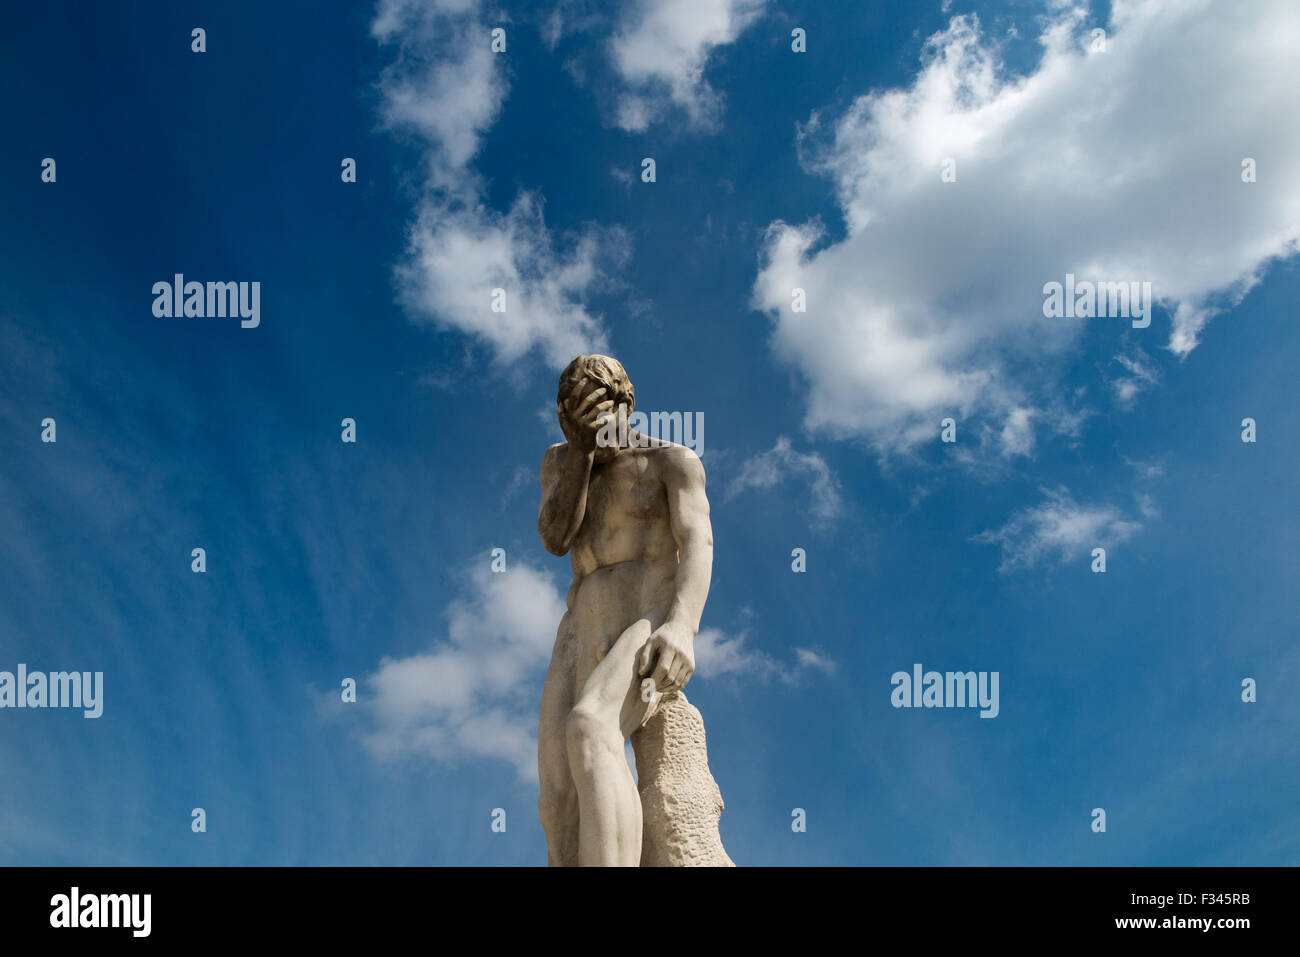 Statue dans le Jardin des Tuileries, Paris, France Photo Stock